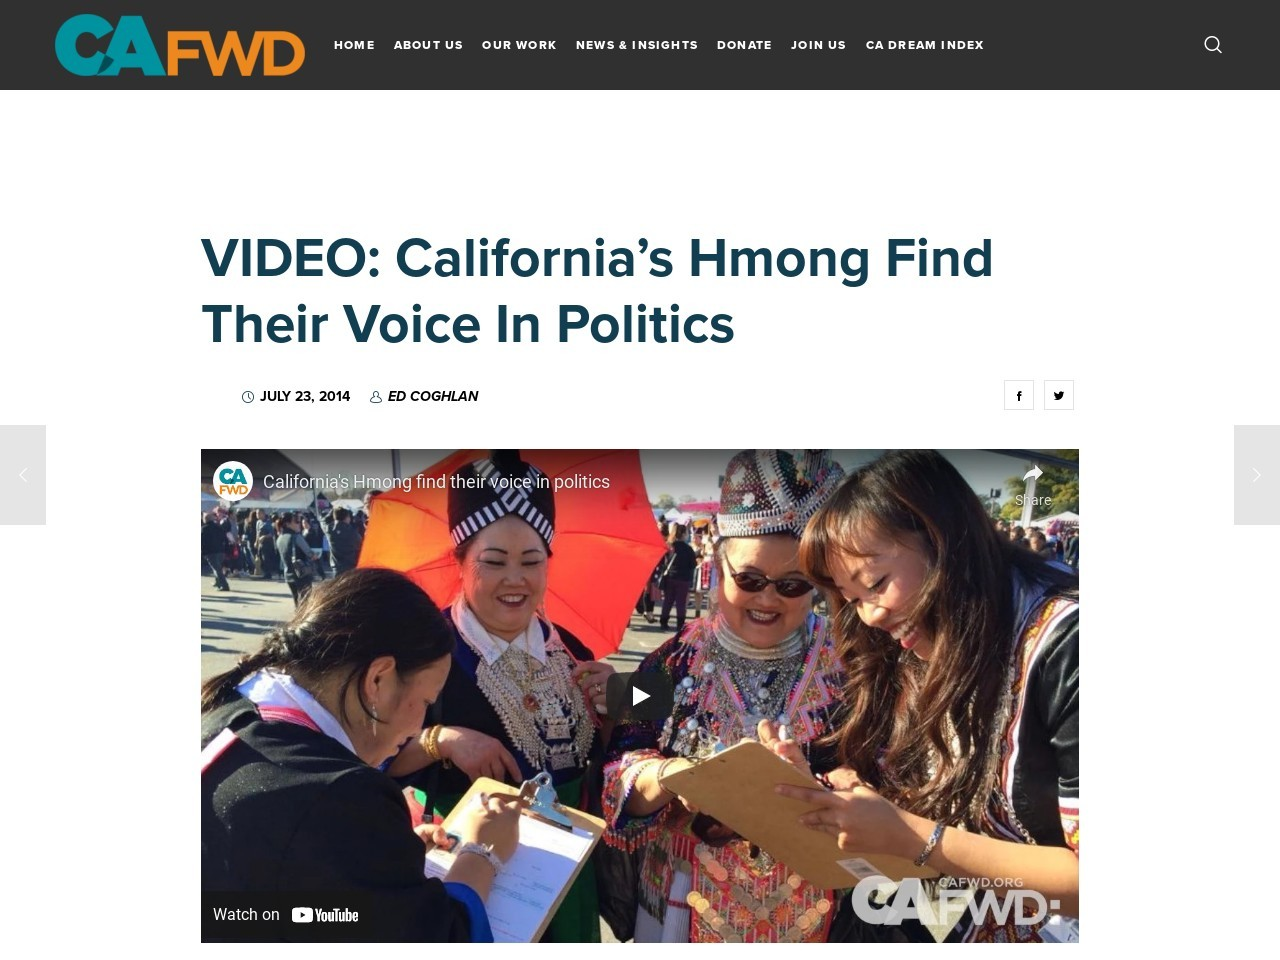 VIDEO: California's Hmong find their voice in politics